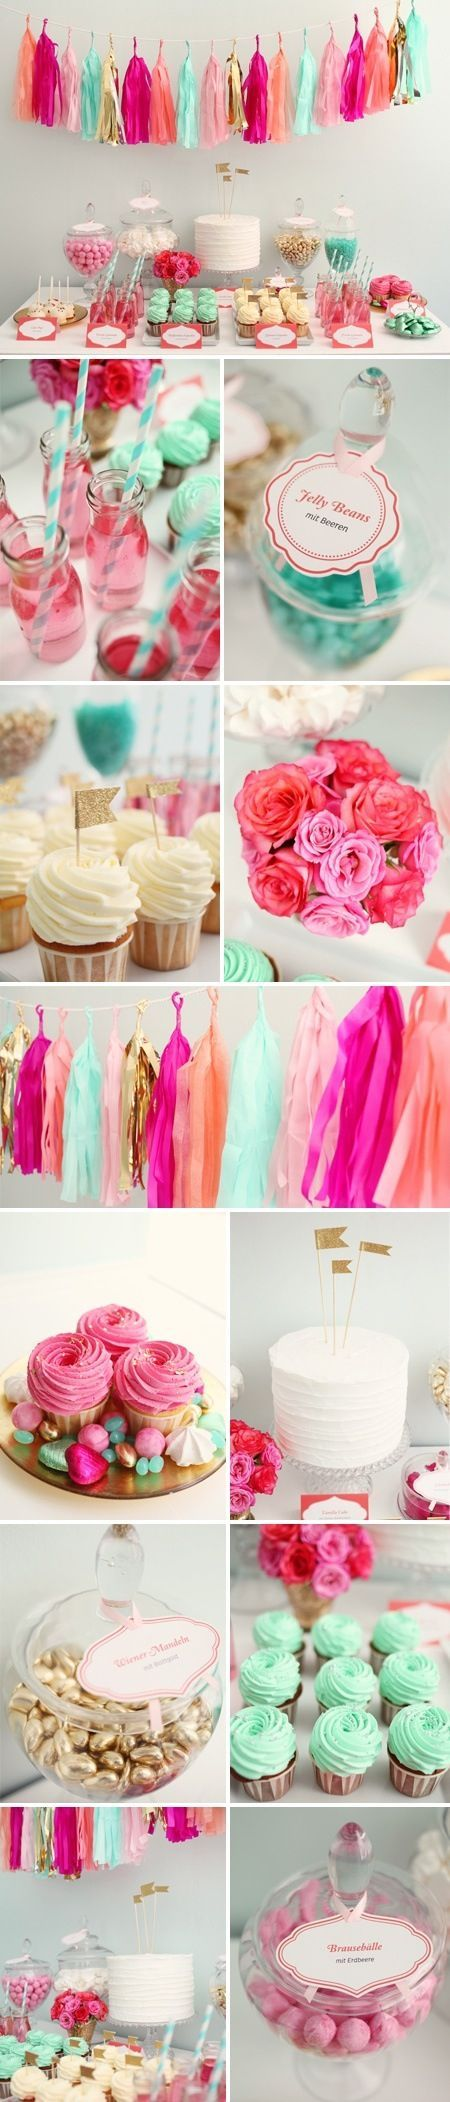 Birthday Party inspirations - LOVE the colors!